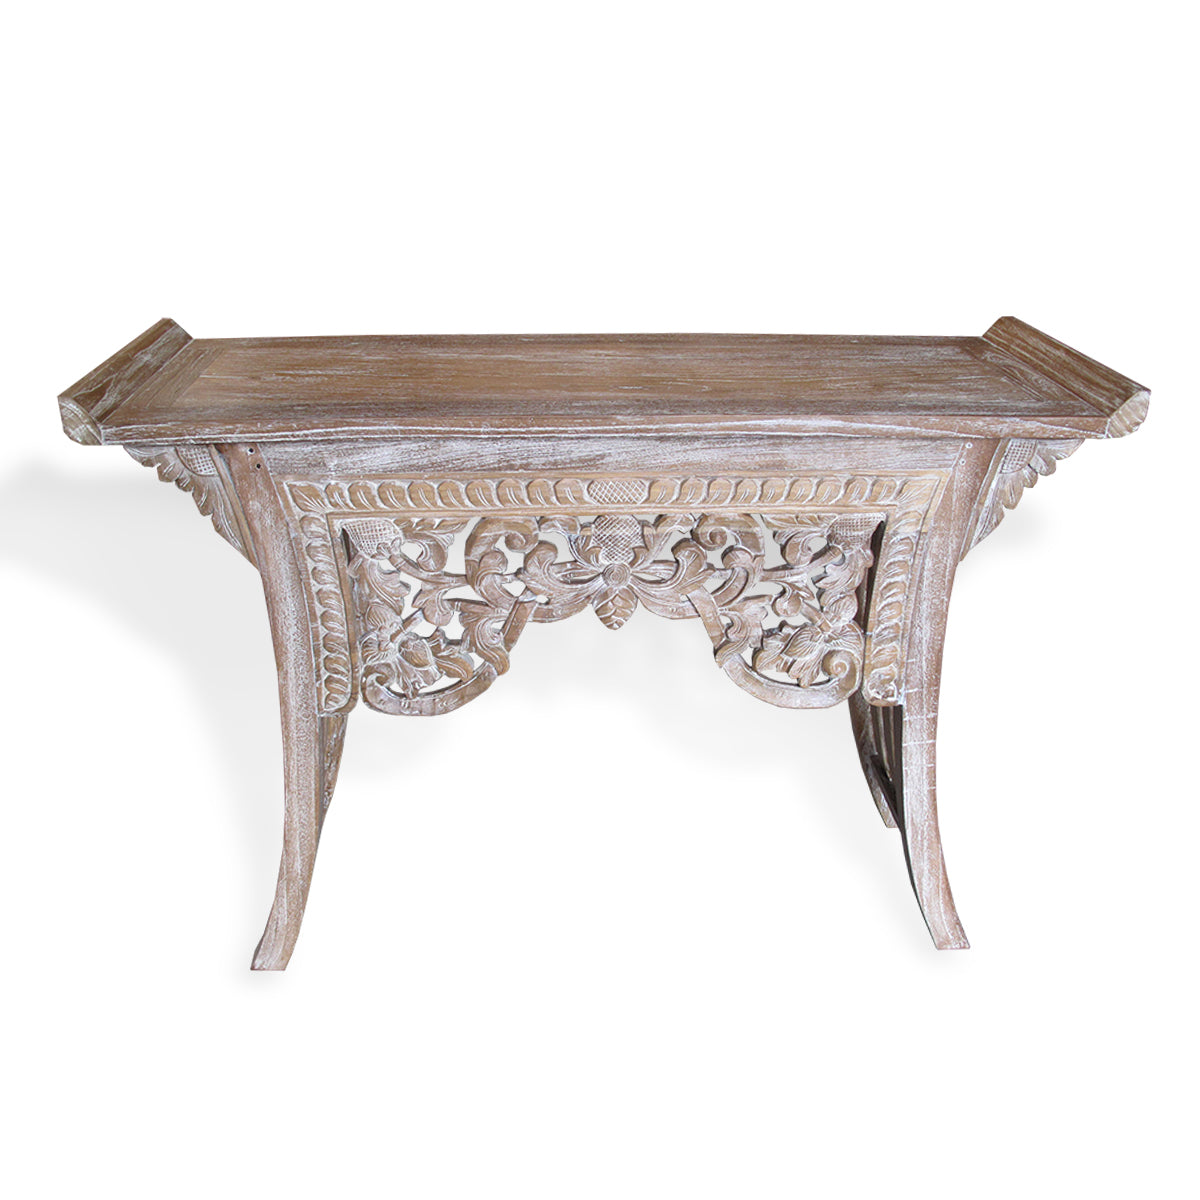 LAC045 CARVED RECYCLED TEAK CONSOLE